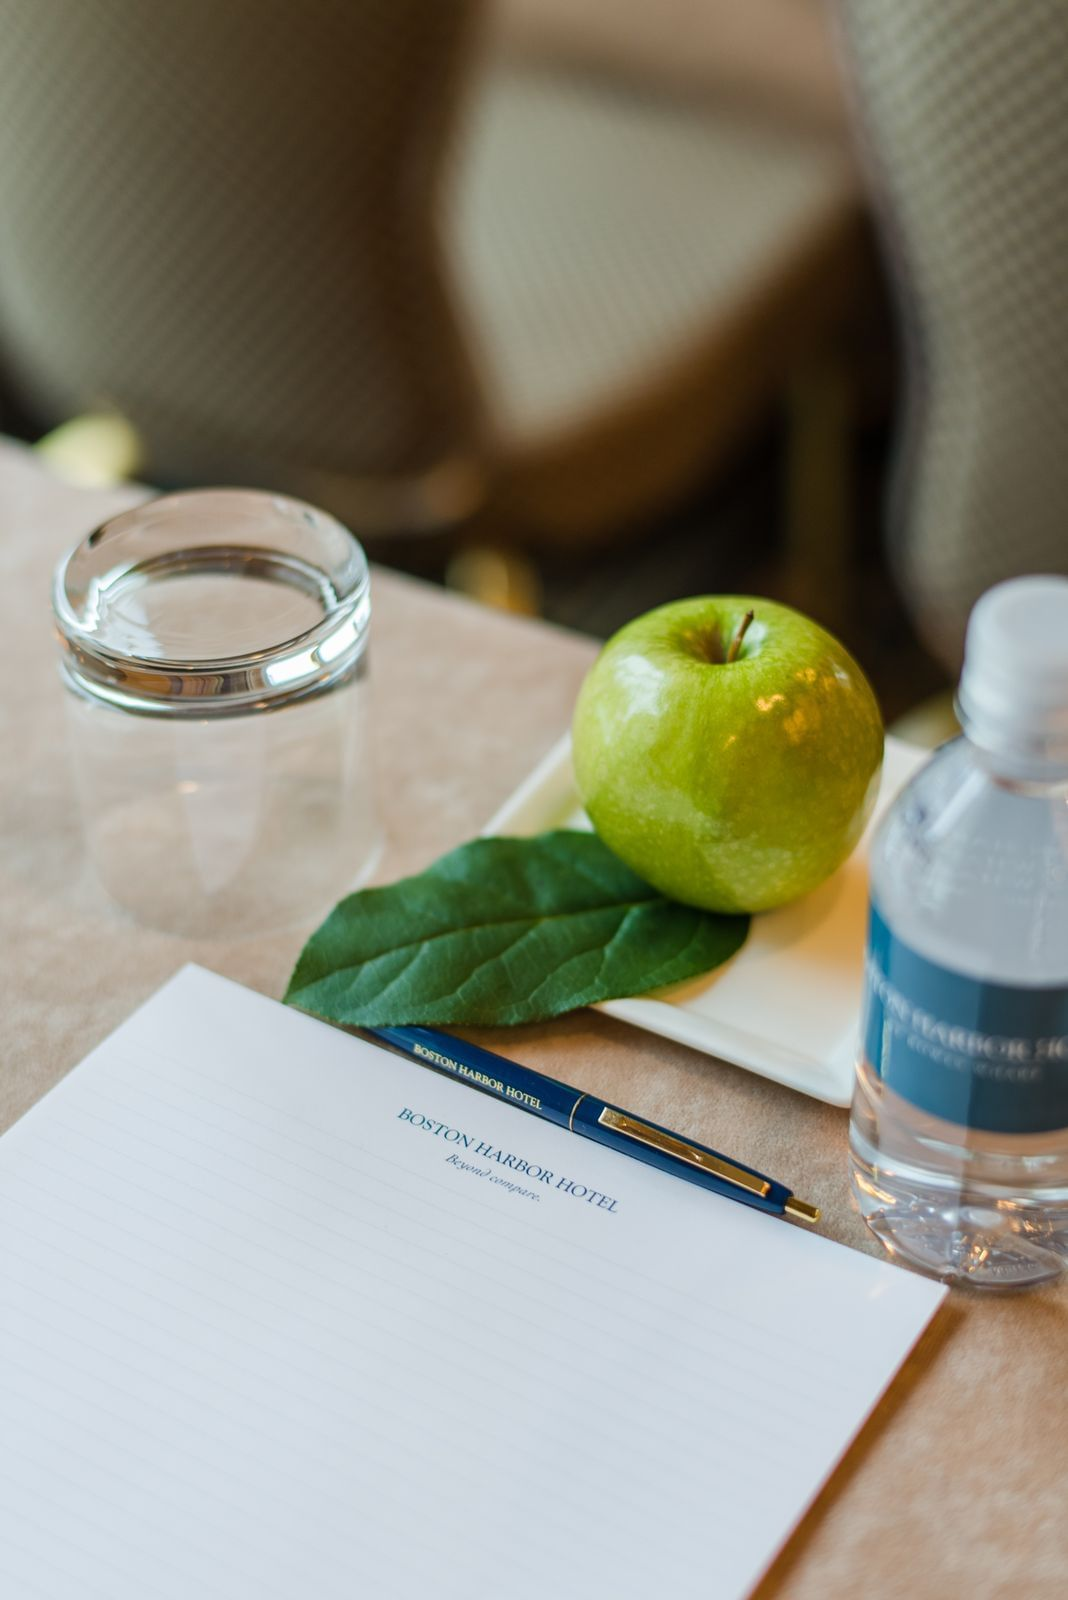 Green apple and bottle of water